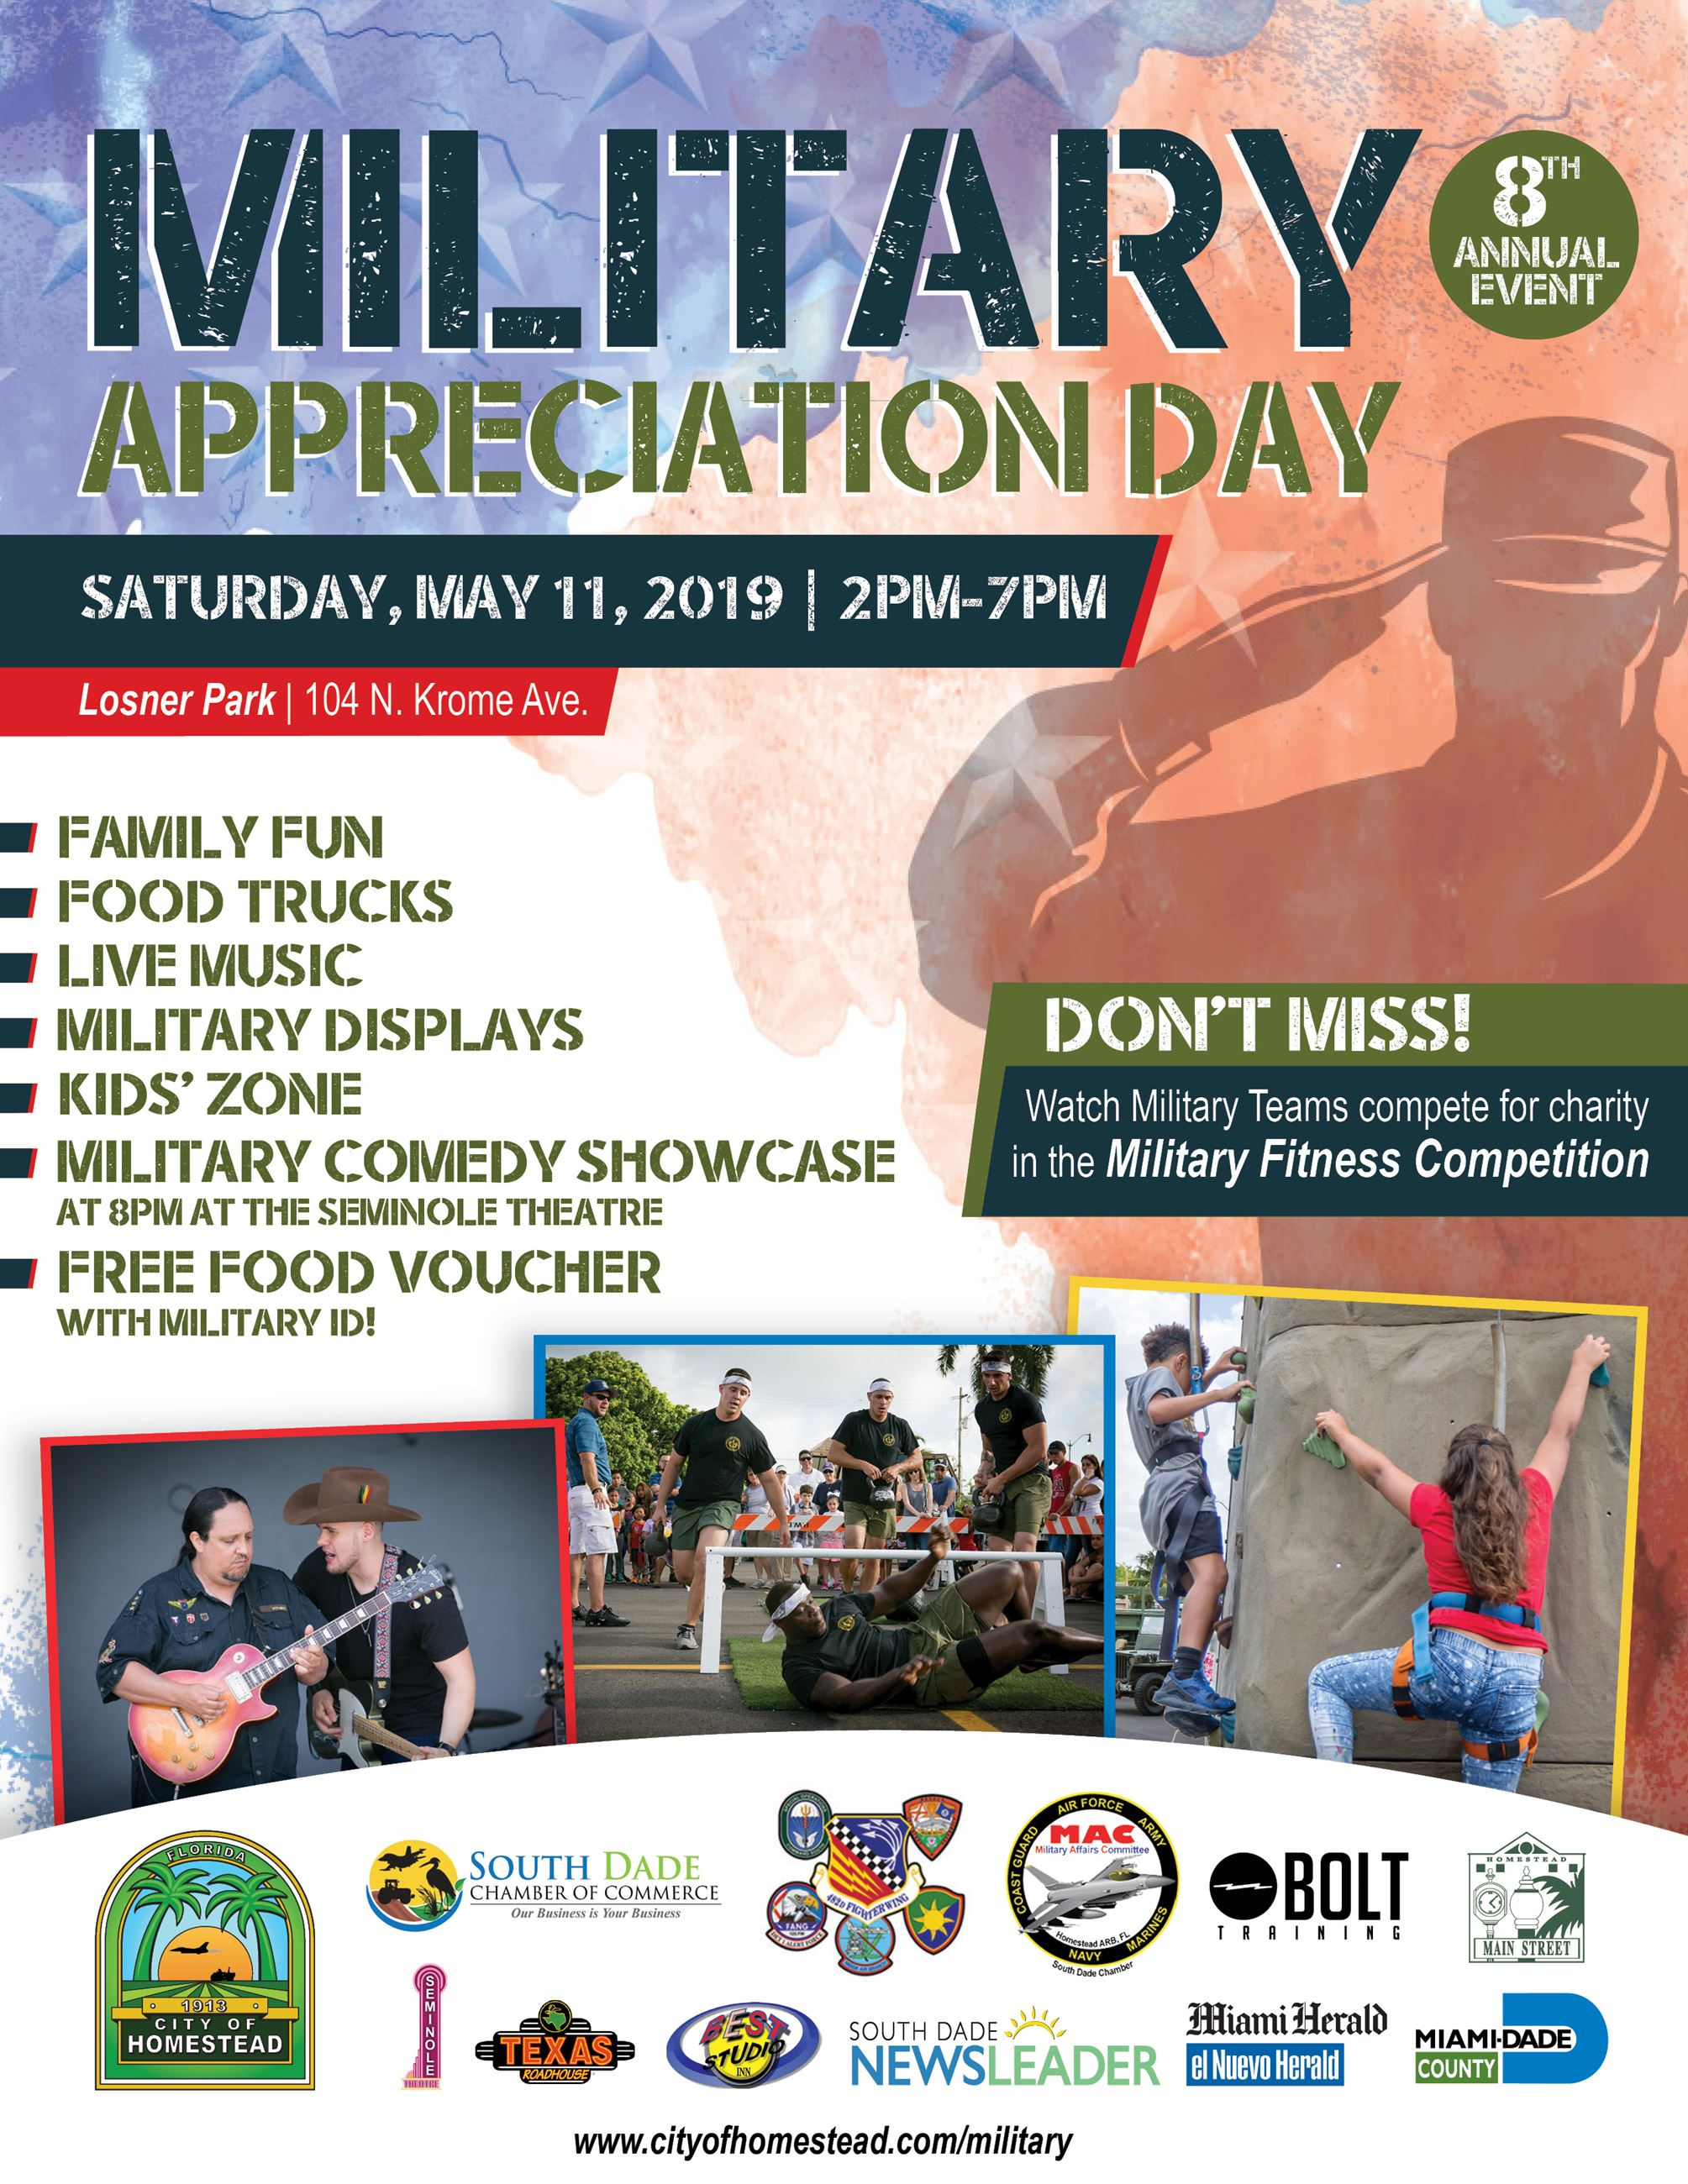 Military Appreciation Day 2019 Digital Flyer